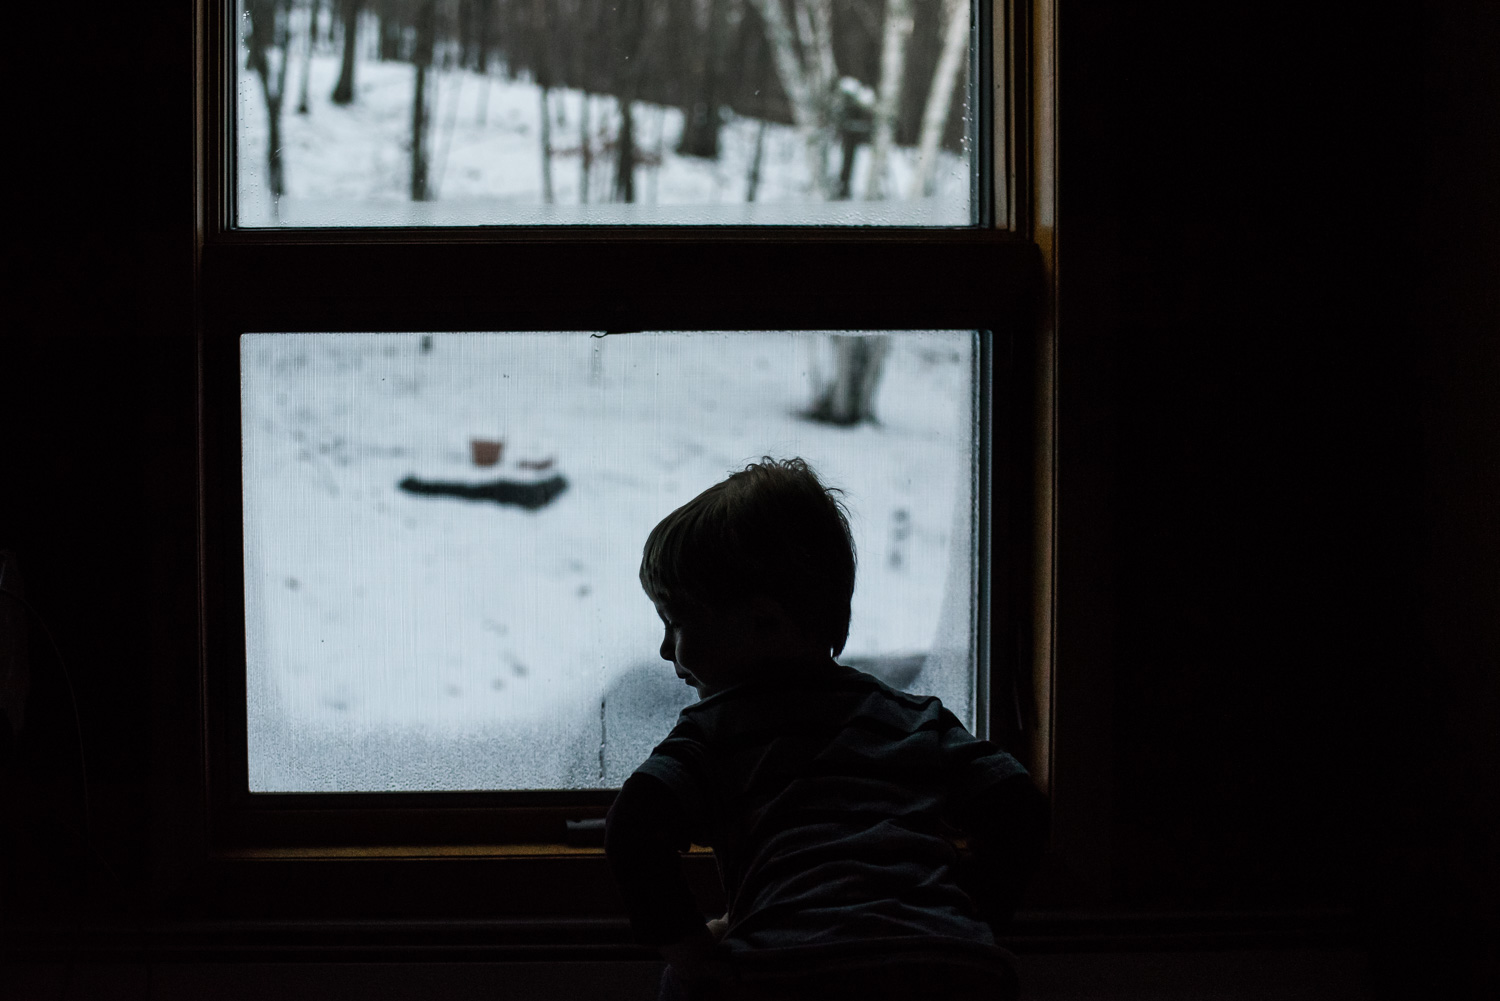 Toddler boy looking out window at snow.